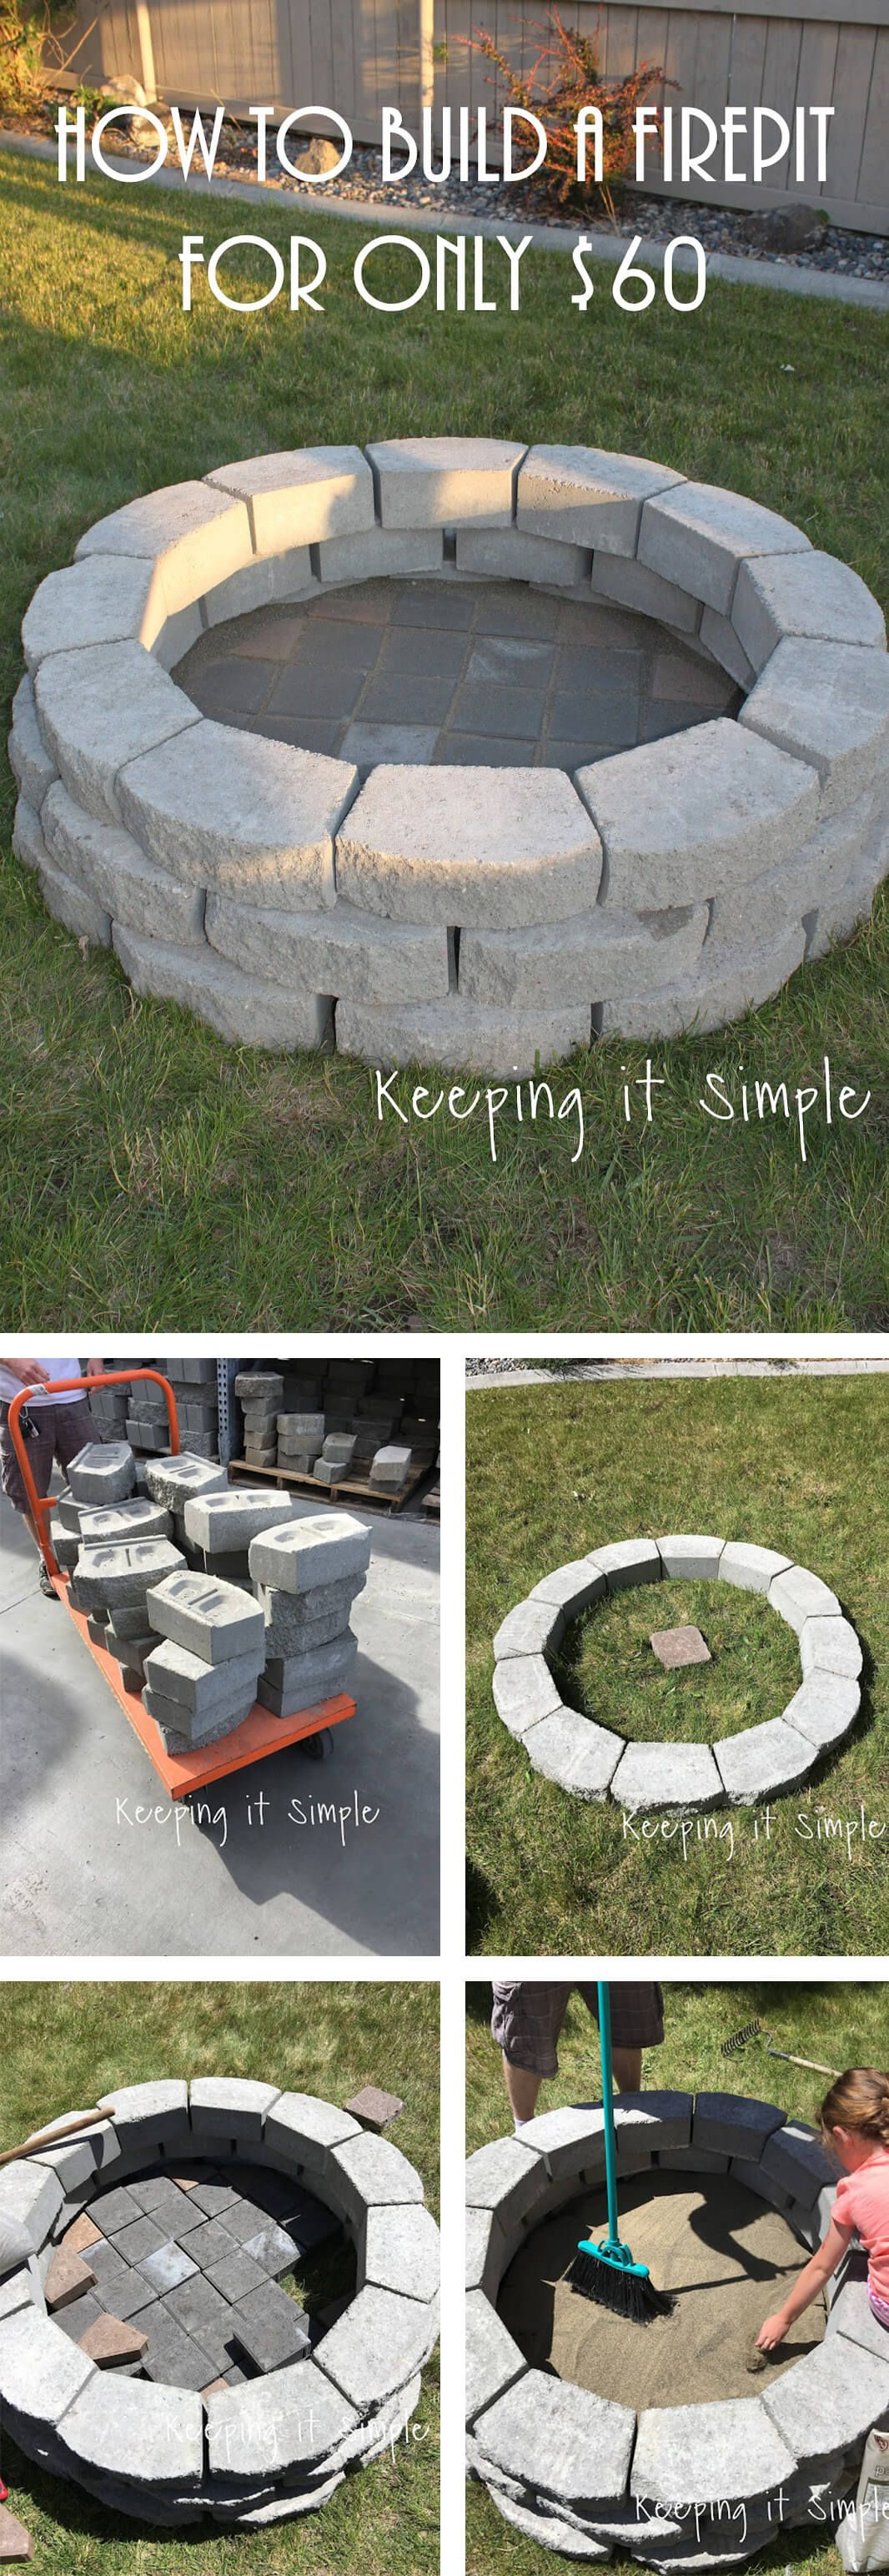 ac1af573cb94dcca3d358145a0fadbef Top Result 50 Awesome Homemade Fire Pit Photos 2018 Zzt4